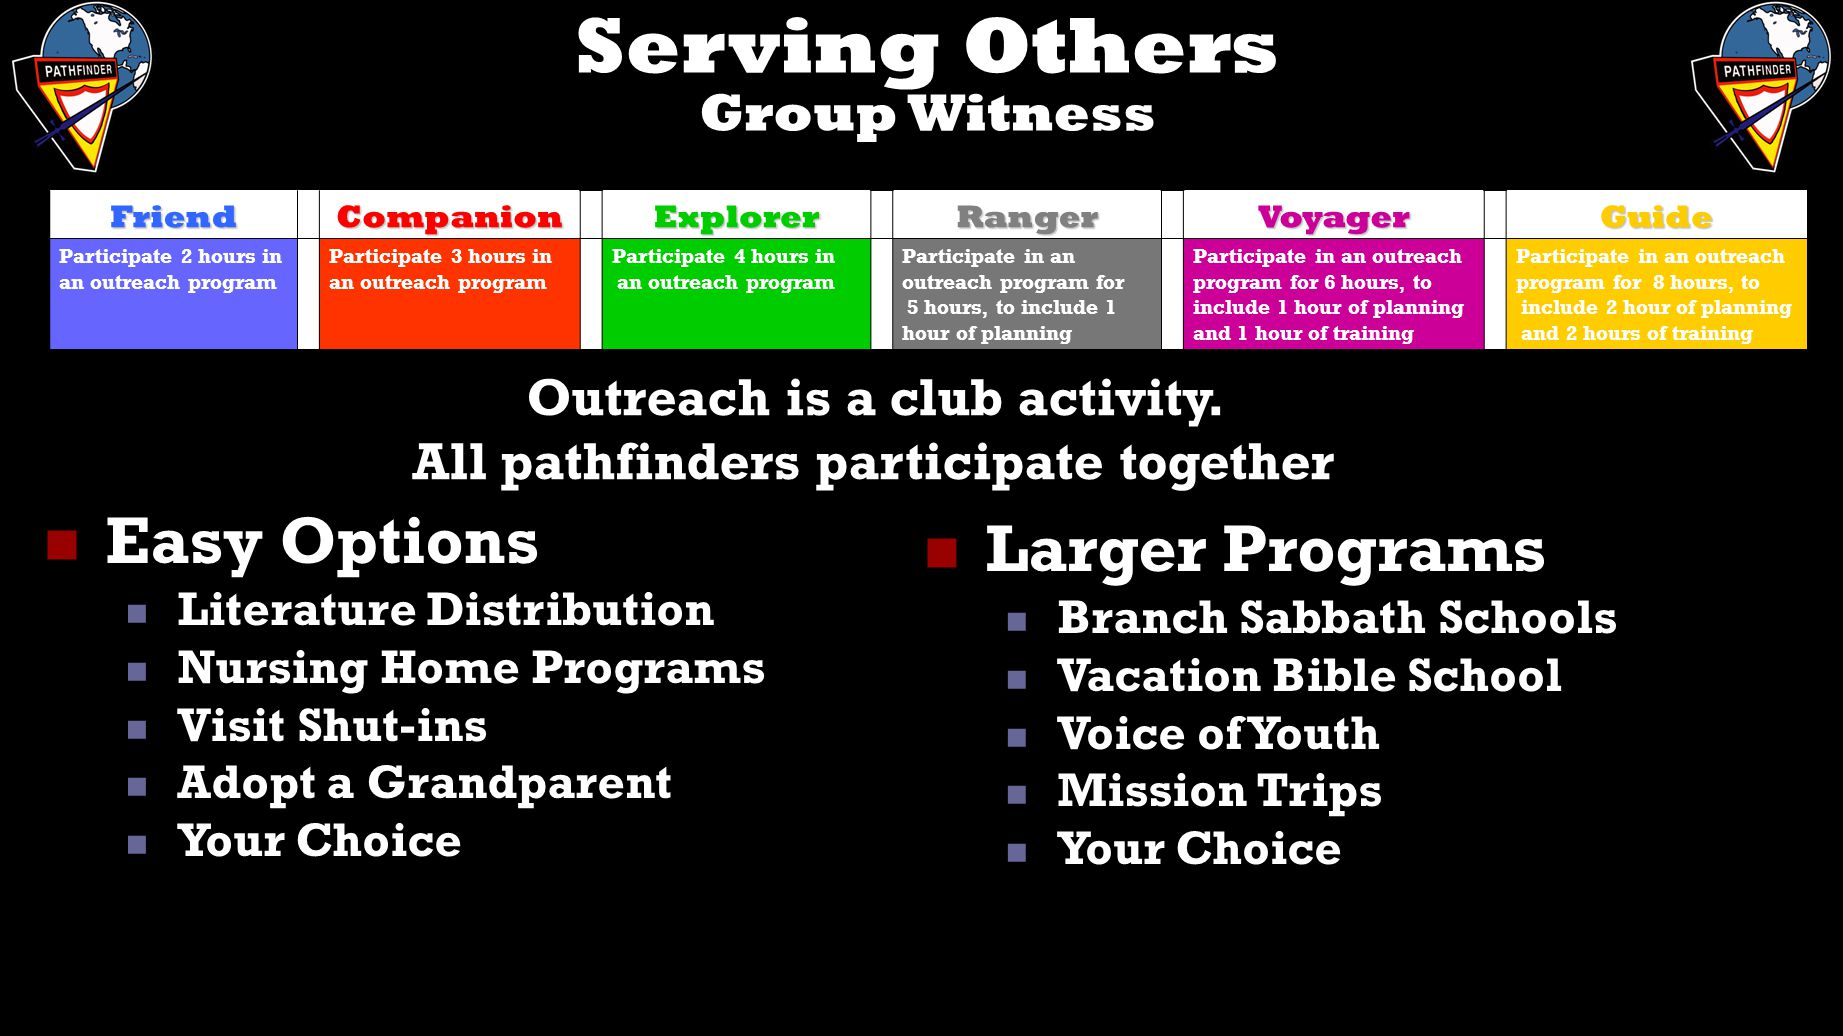 Friend Companion Explorer Ranger Voyager Guide Participate 2 hours in an outreach program Participate 3 hours in an outreach program Participate 4 hou